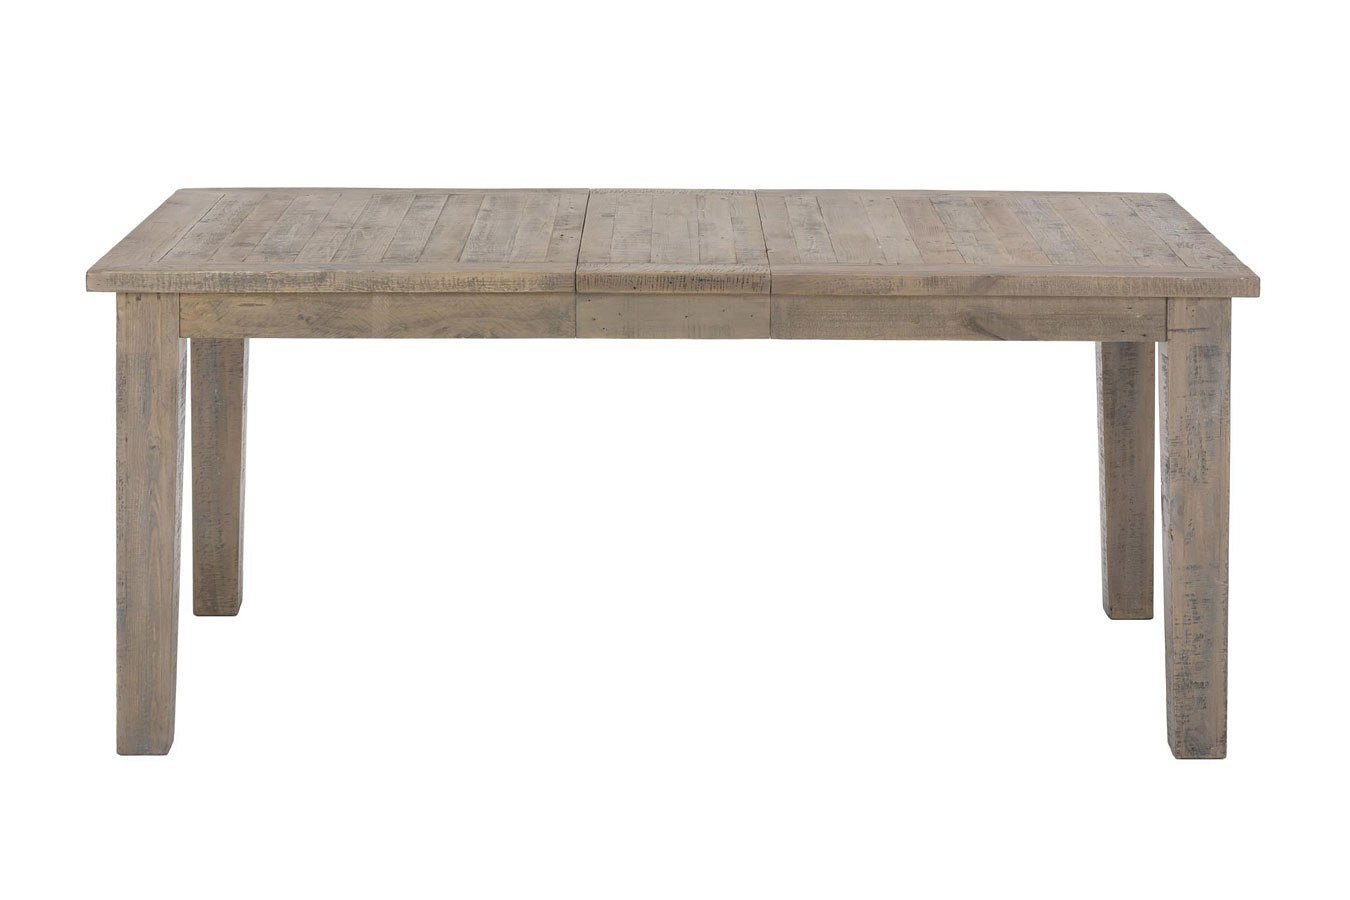 Slater Mill Rectangular Dining Table By Jofran Furniture